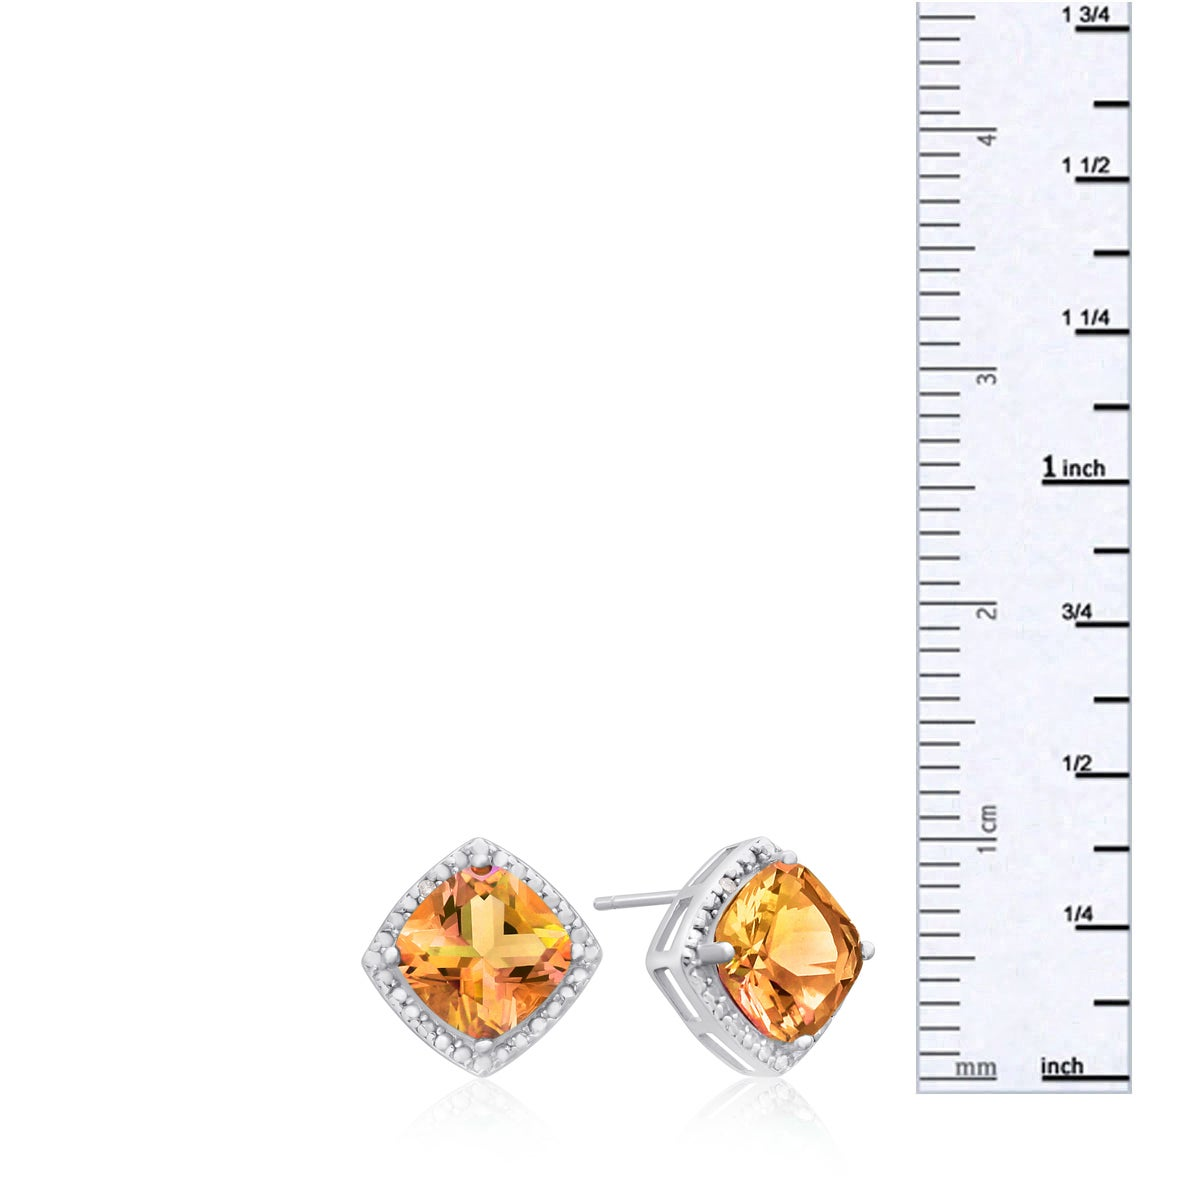 earrings in jewelers padparadscha gold ring diamond yellow sapphire and scanlon shop